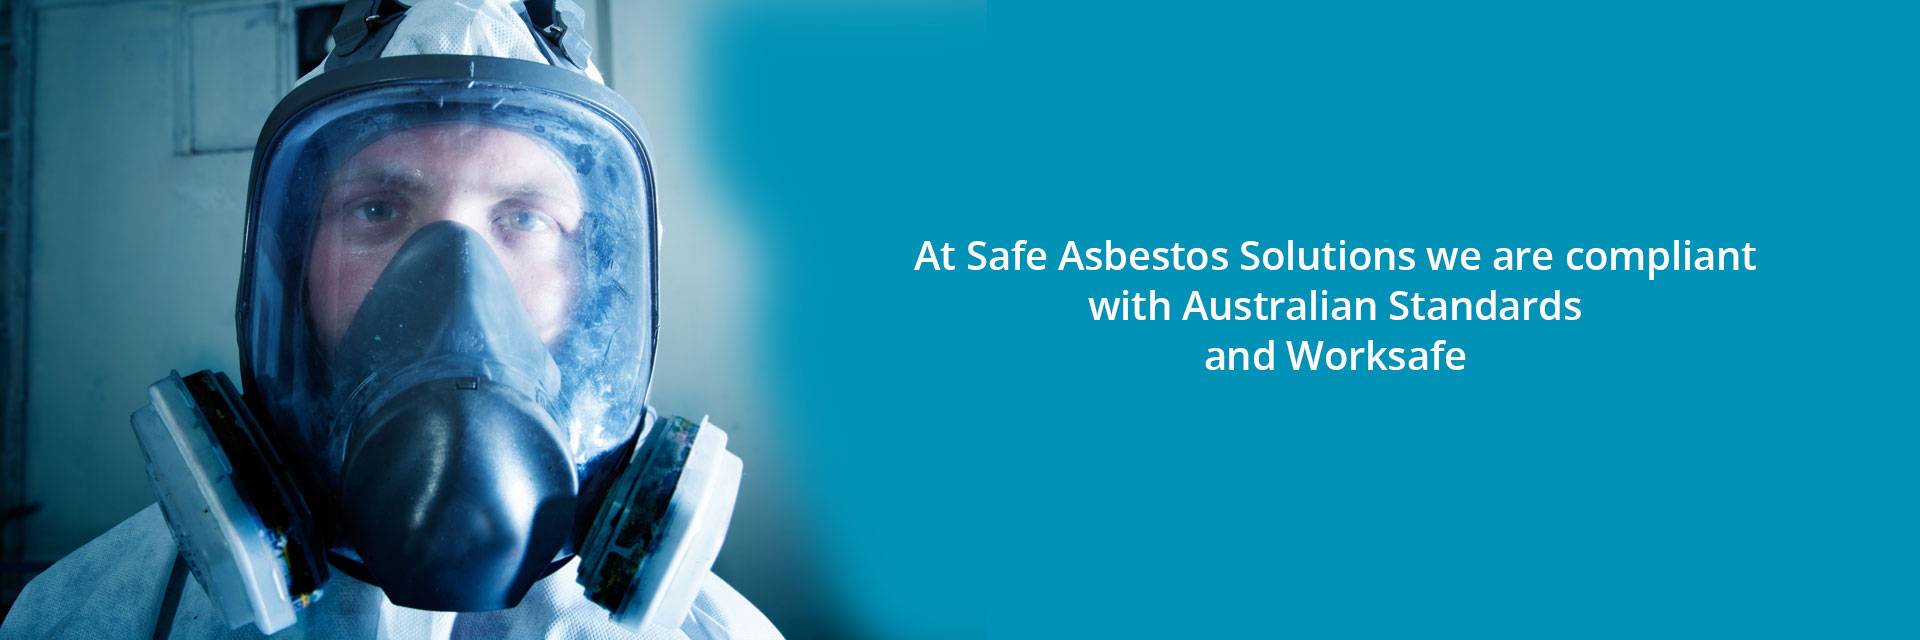 safety at safe asbestos solutions